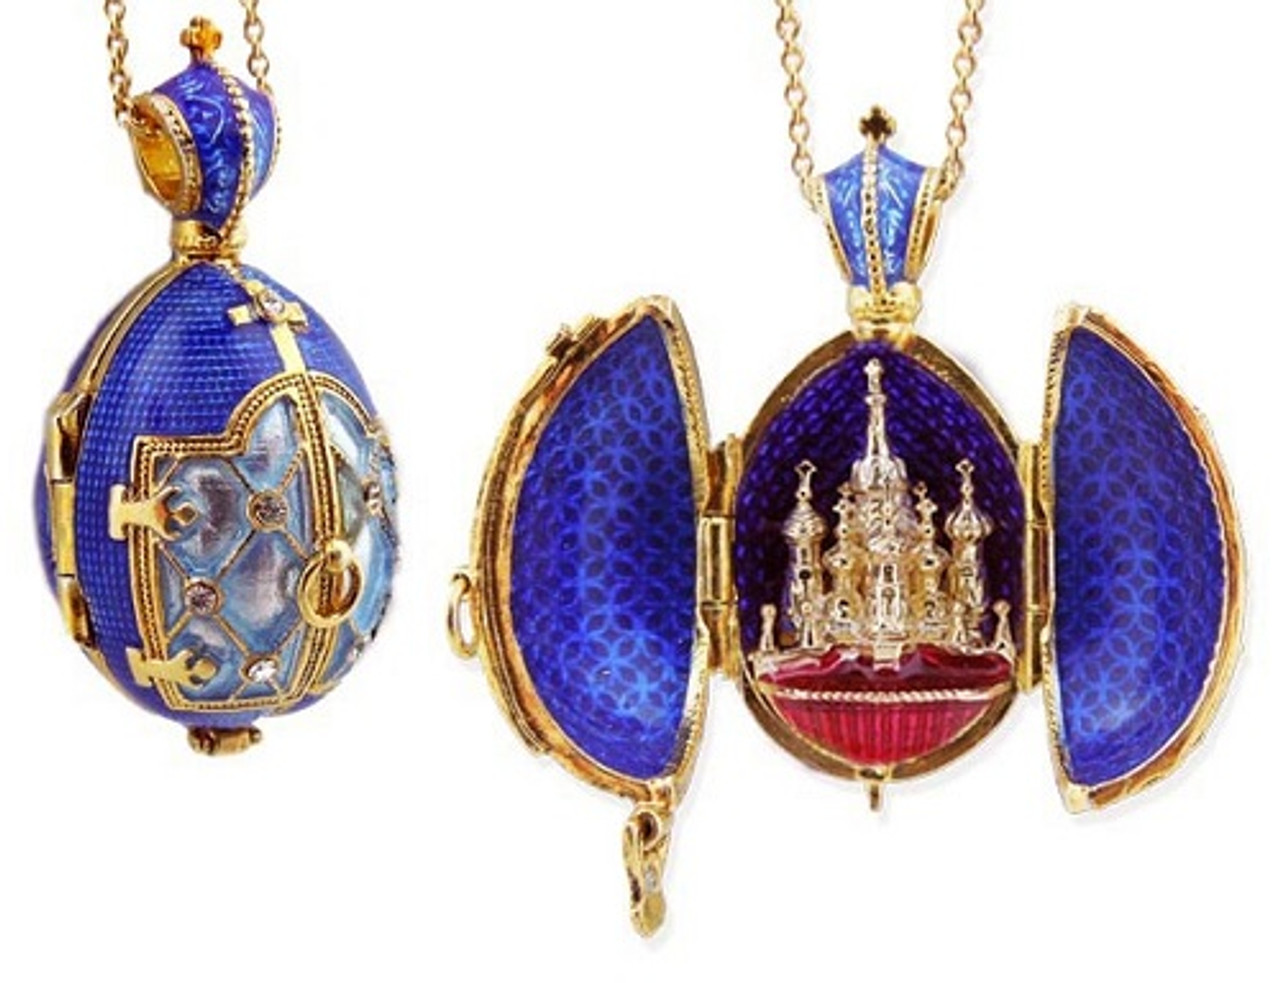 faberge-egg-pendant-basil-cathedral-005761__08299.1541619821.jpg